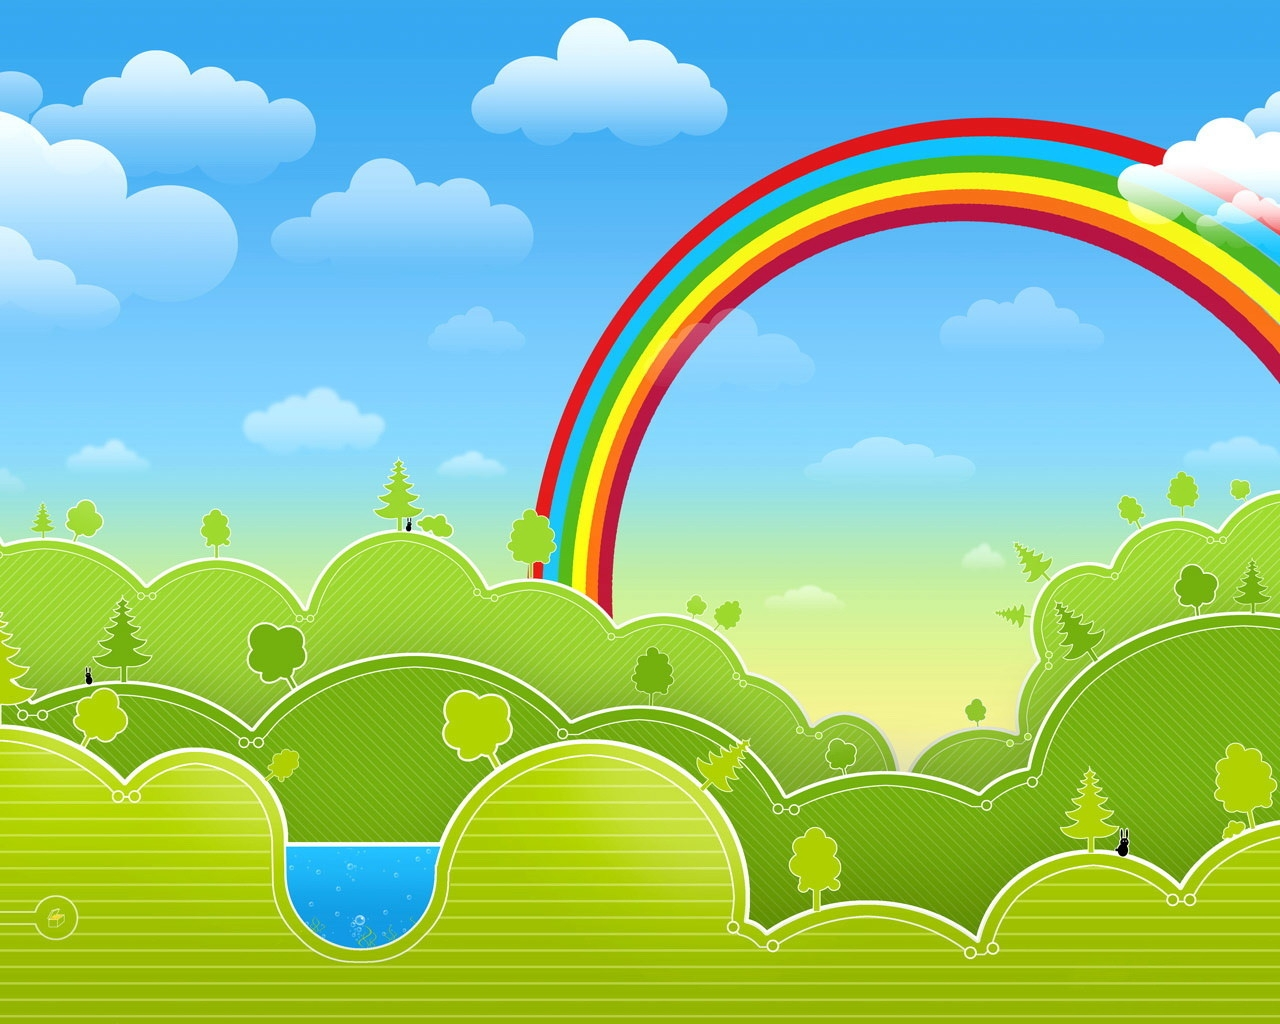 Drawn rainbow the sky Multicolored 1280x1024 Drawing Download Rainbow